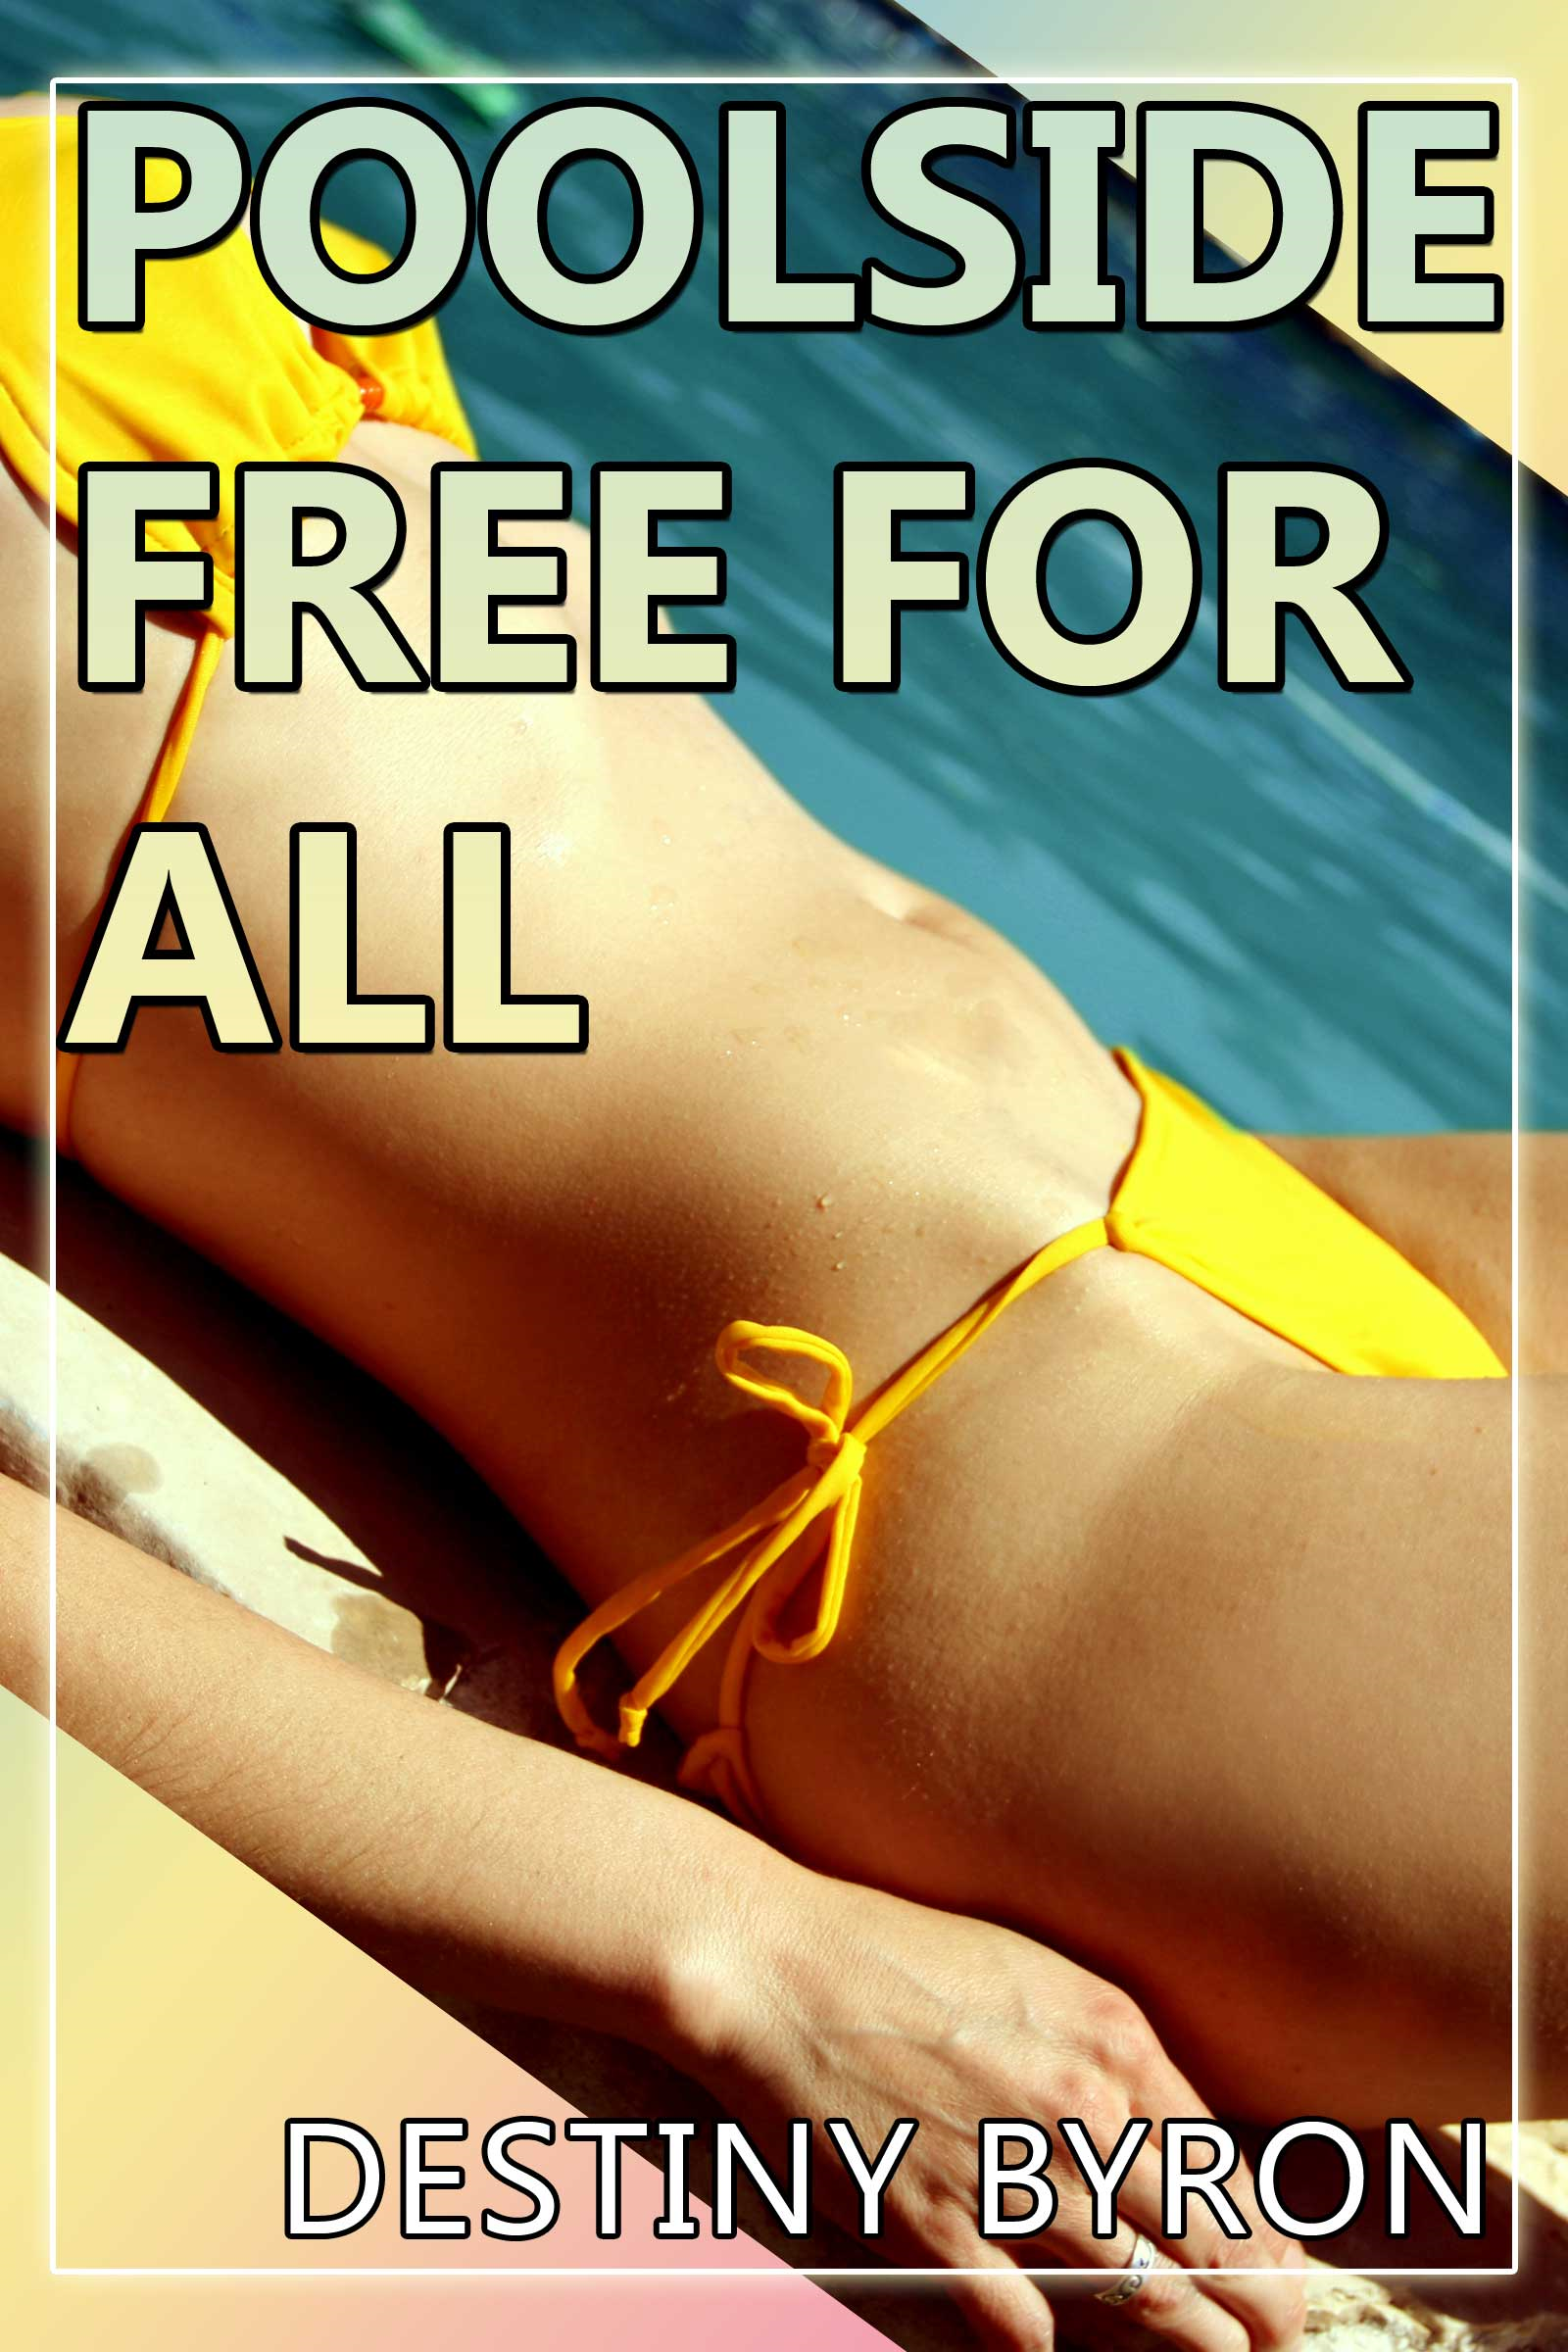 Poolside free for all